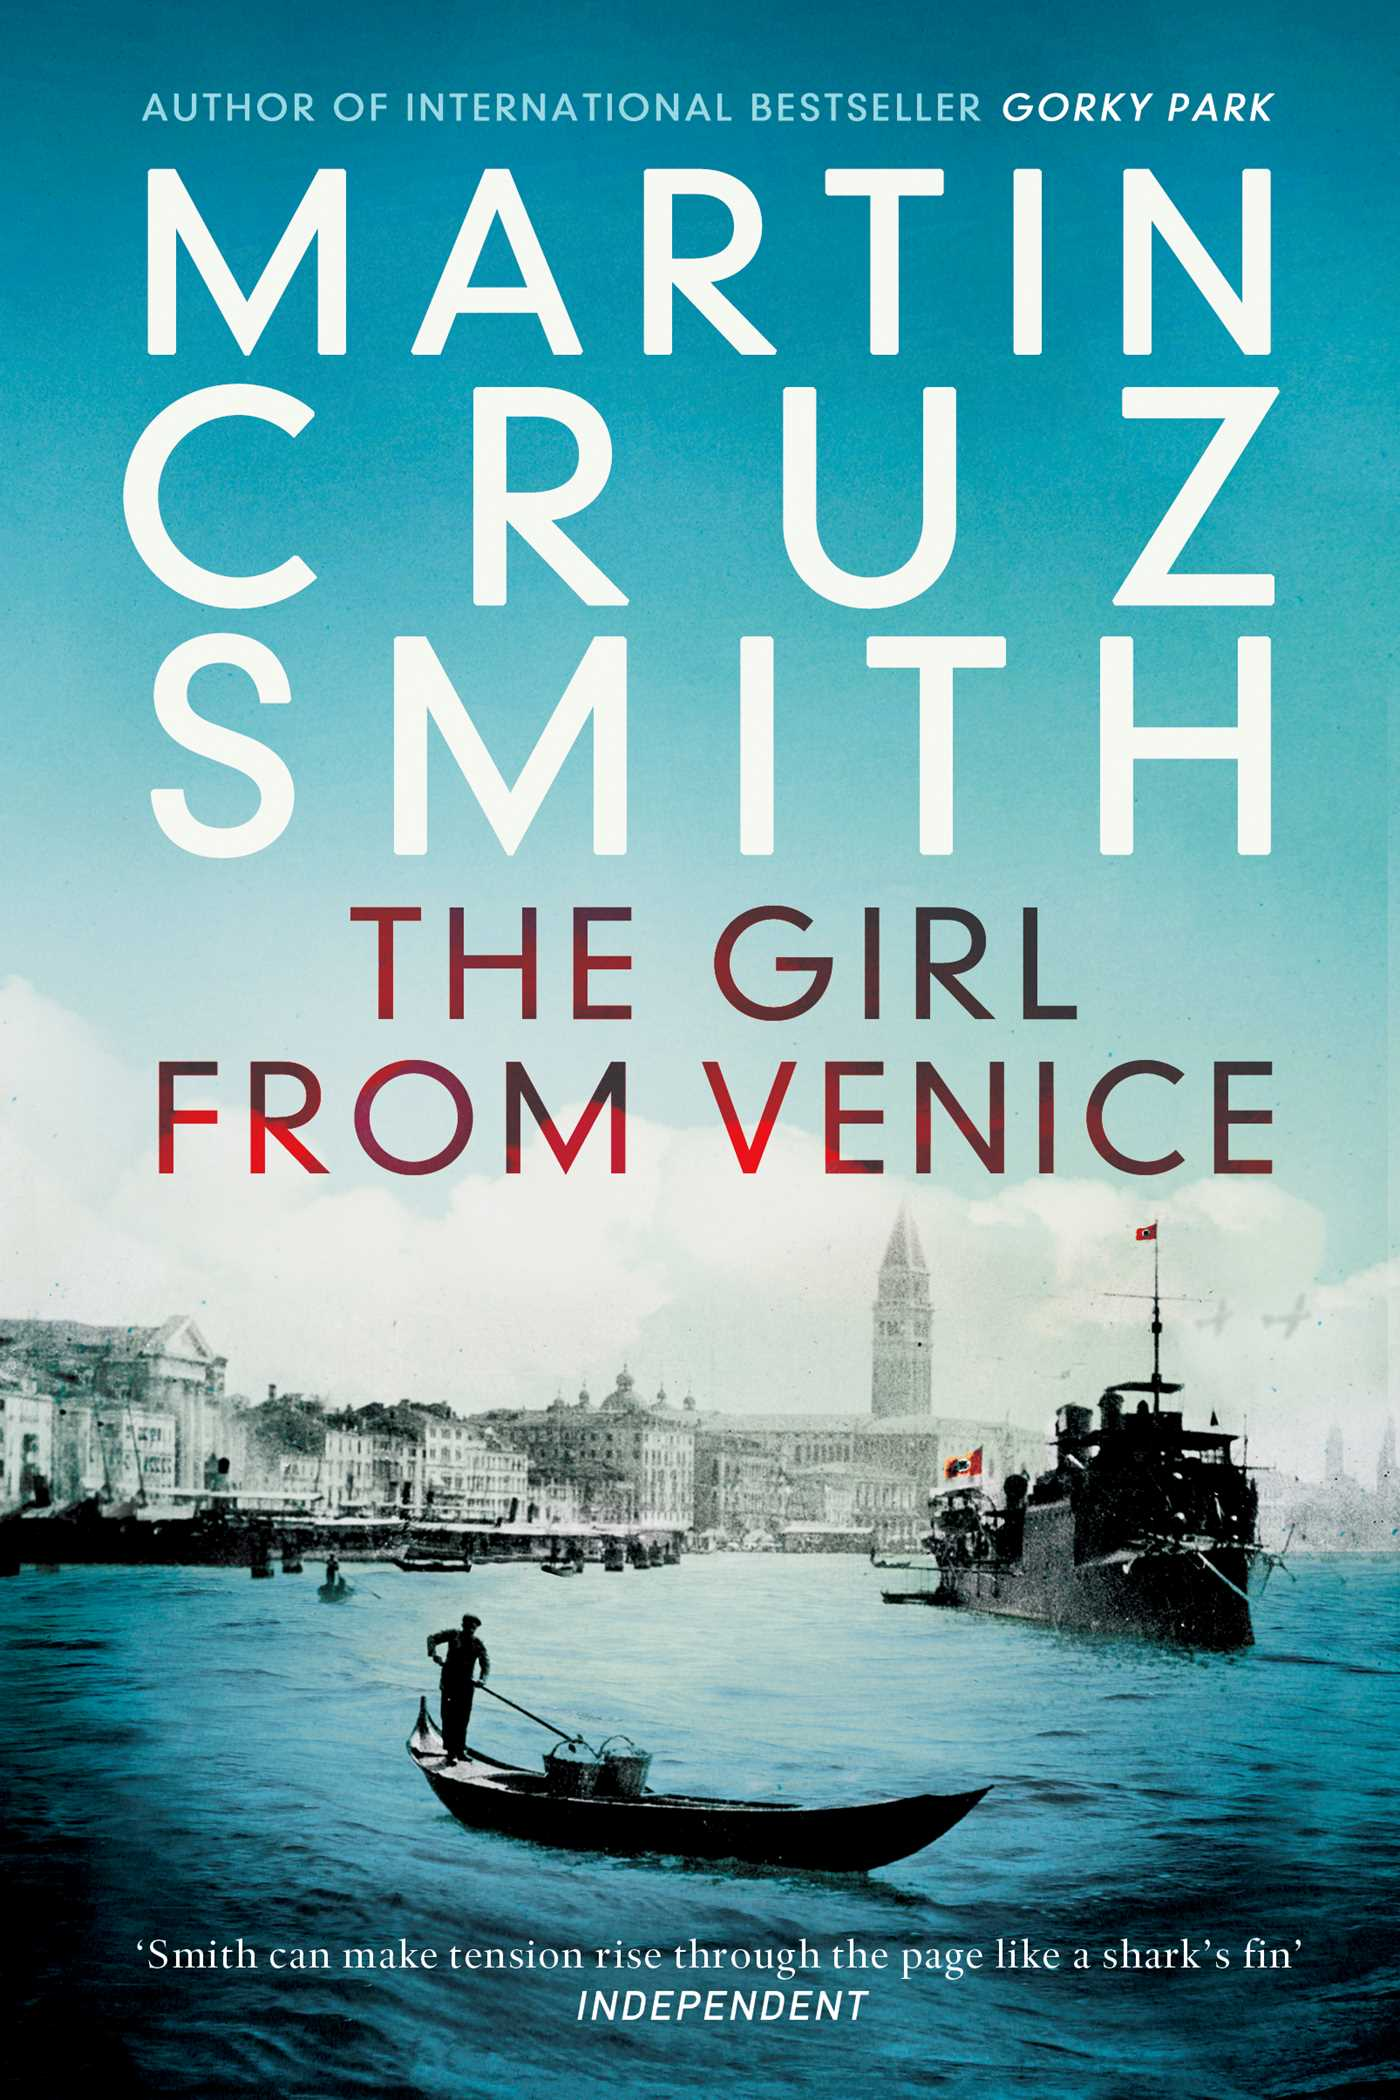 The girl from venice 9781849838160 hr